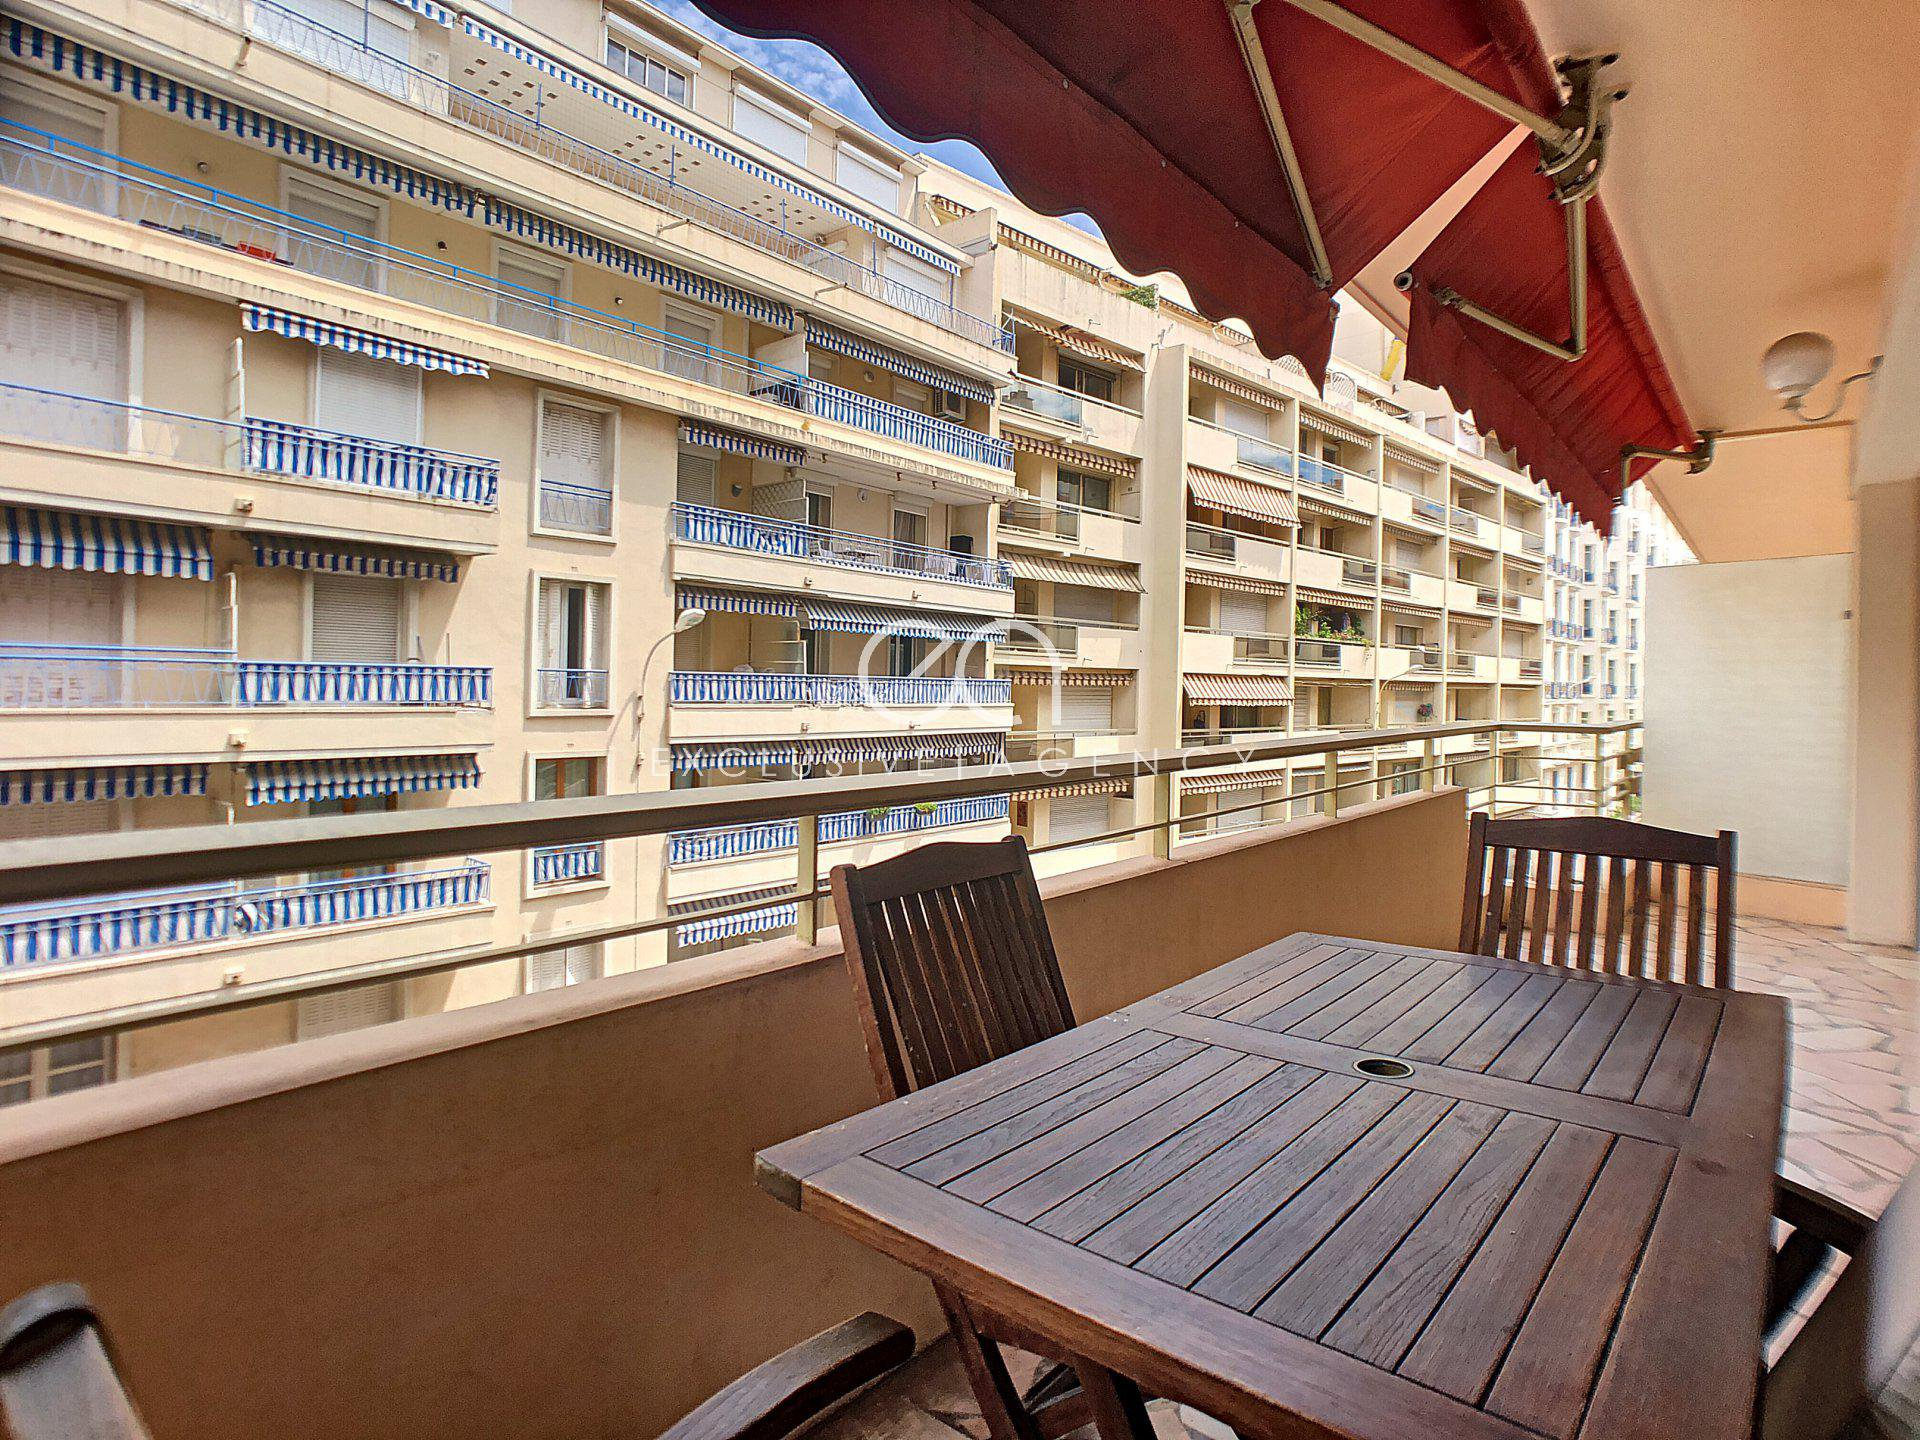 Cannes Croisette for sale 64sqm 2-bedroom apartment with 12sqm terrace.